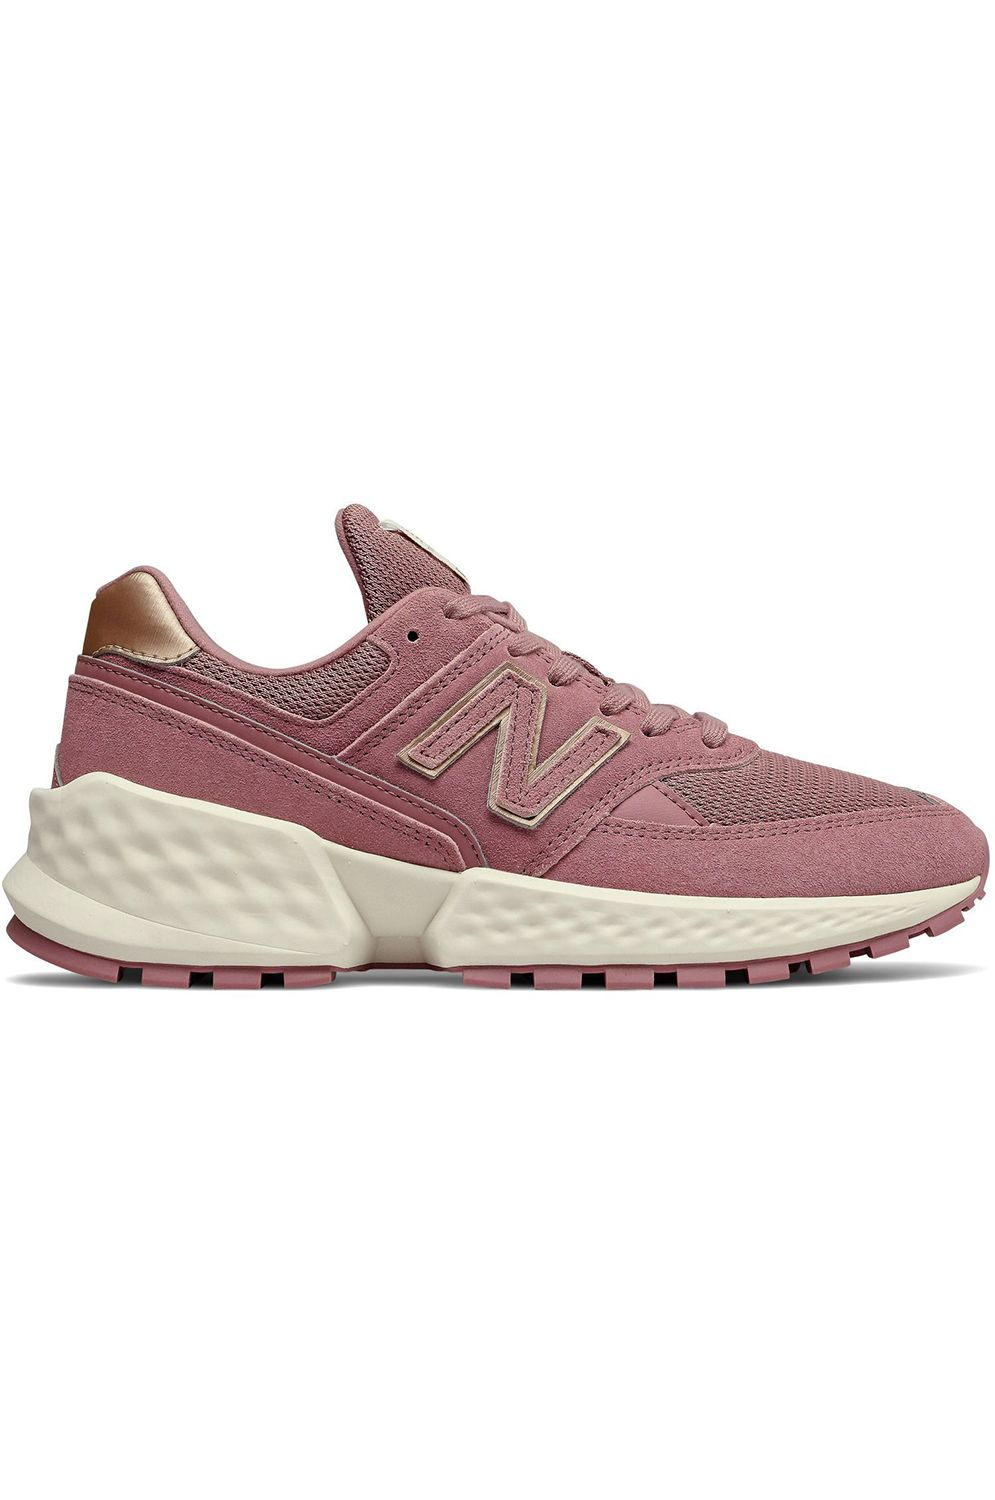 New Balance Shoes WS574 Pink